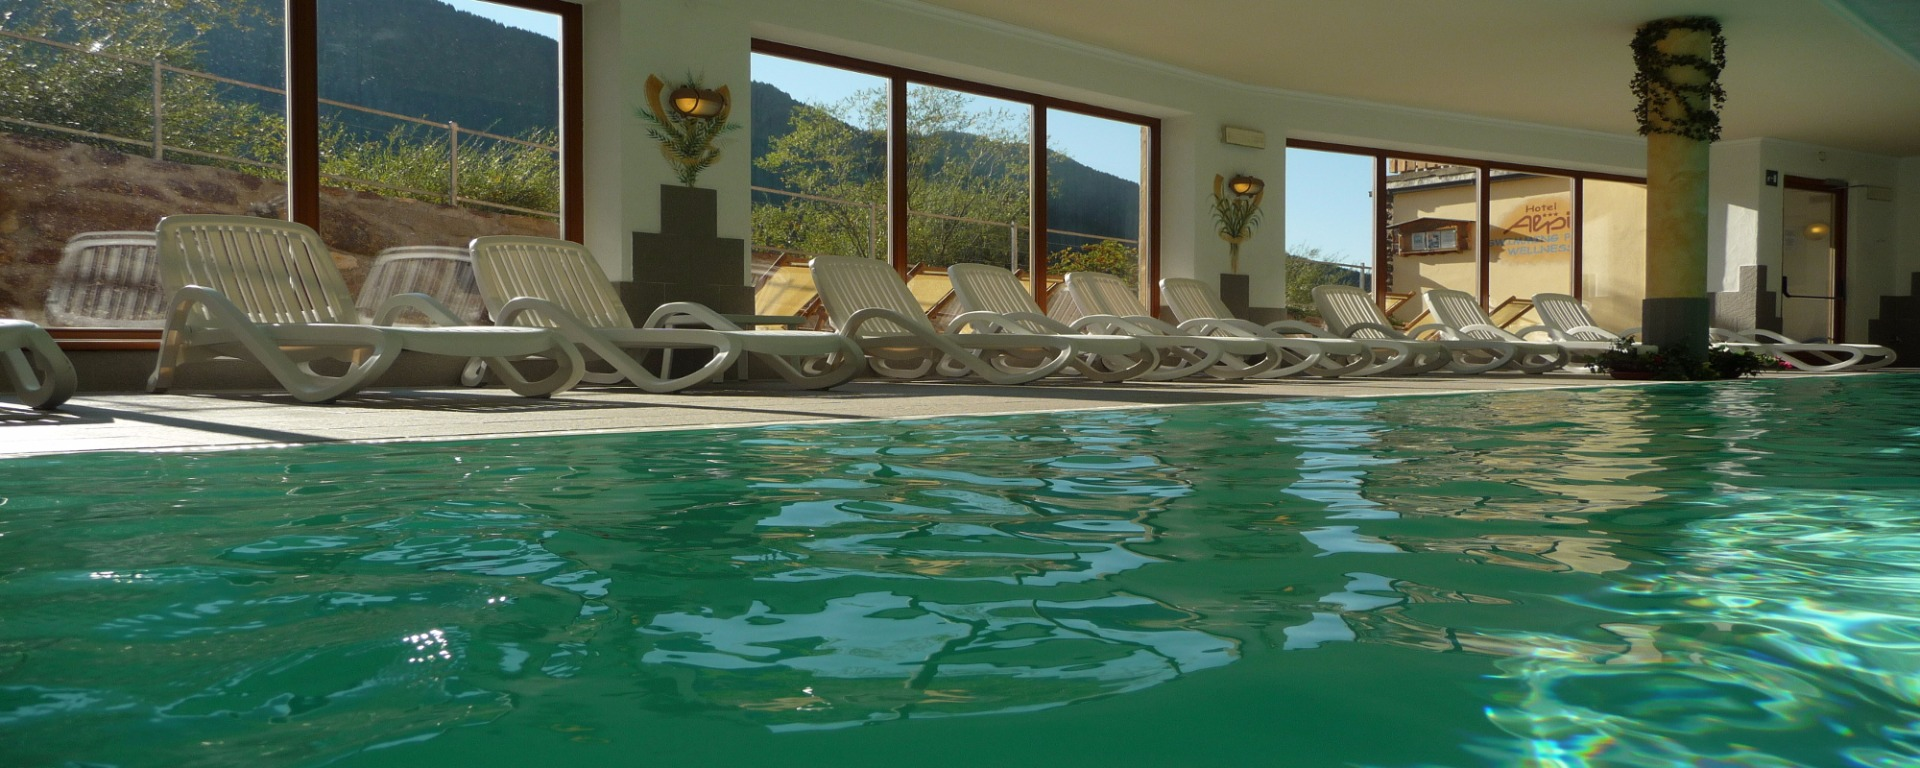 The biggest indoor pool in Sexten Sesto you find at the Biovita Hotel Alpi